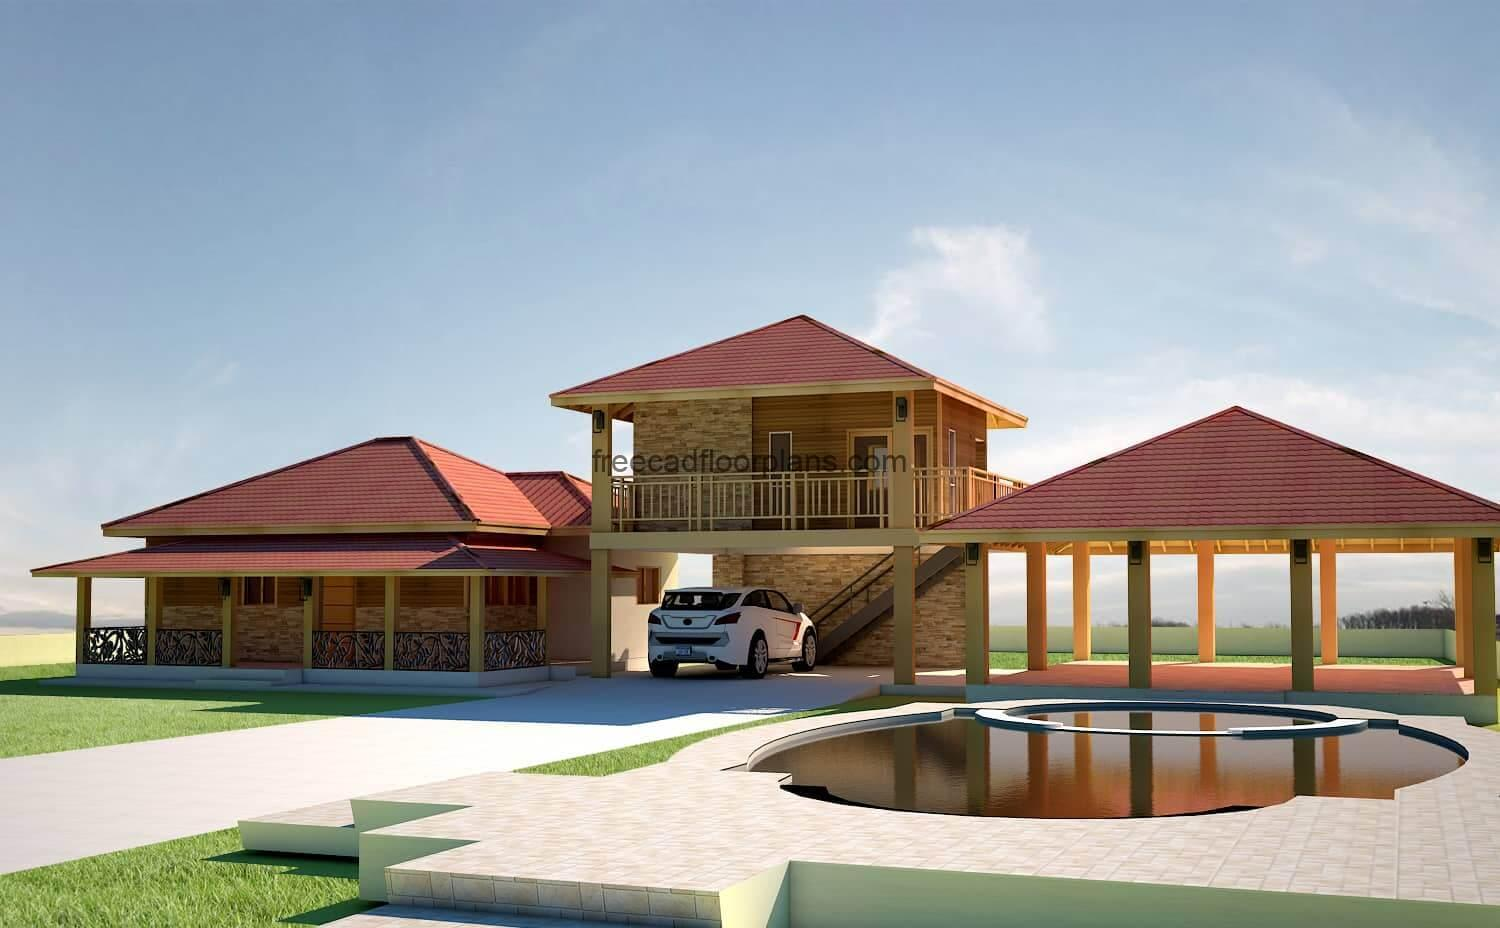 Preliminary architectural project in DWG of a housing complex designed with a country villa on one level with two bedrooms, and another room next door on a second level with a garage underneath, gazebo for social area and swimming pool